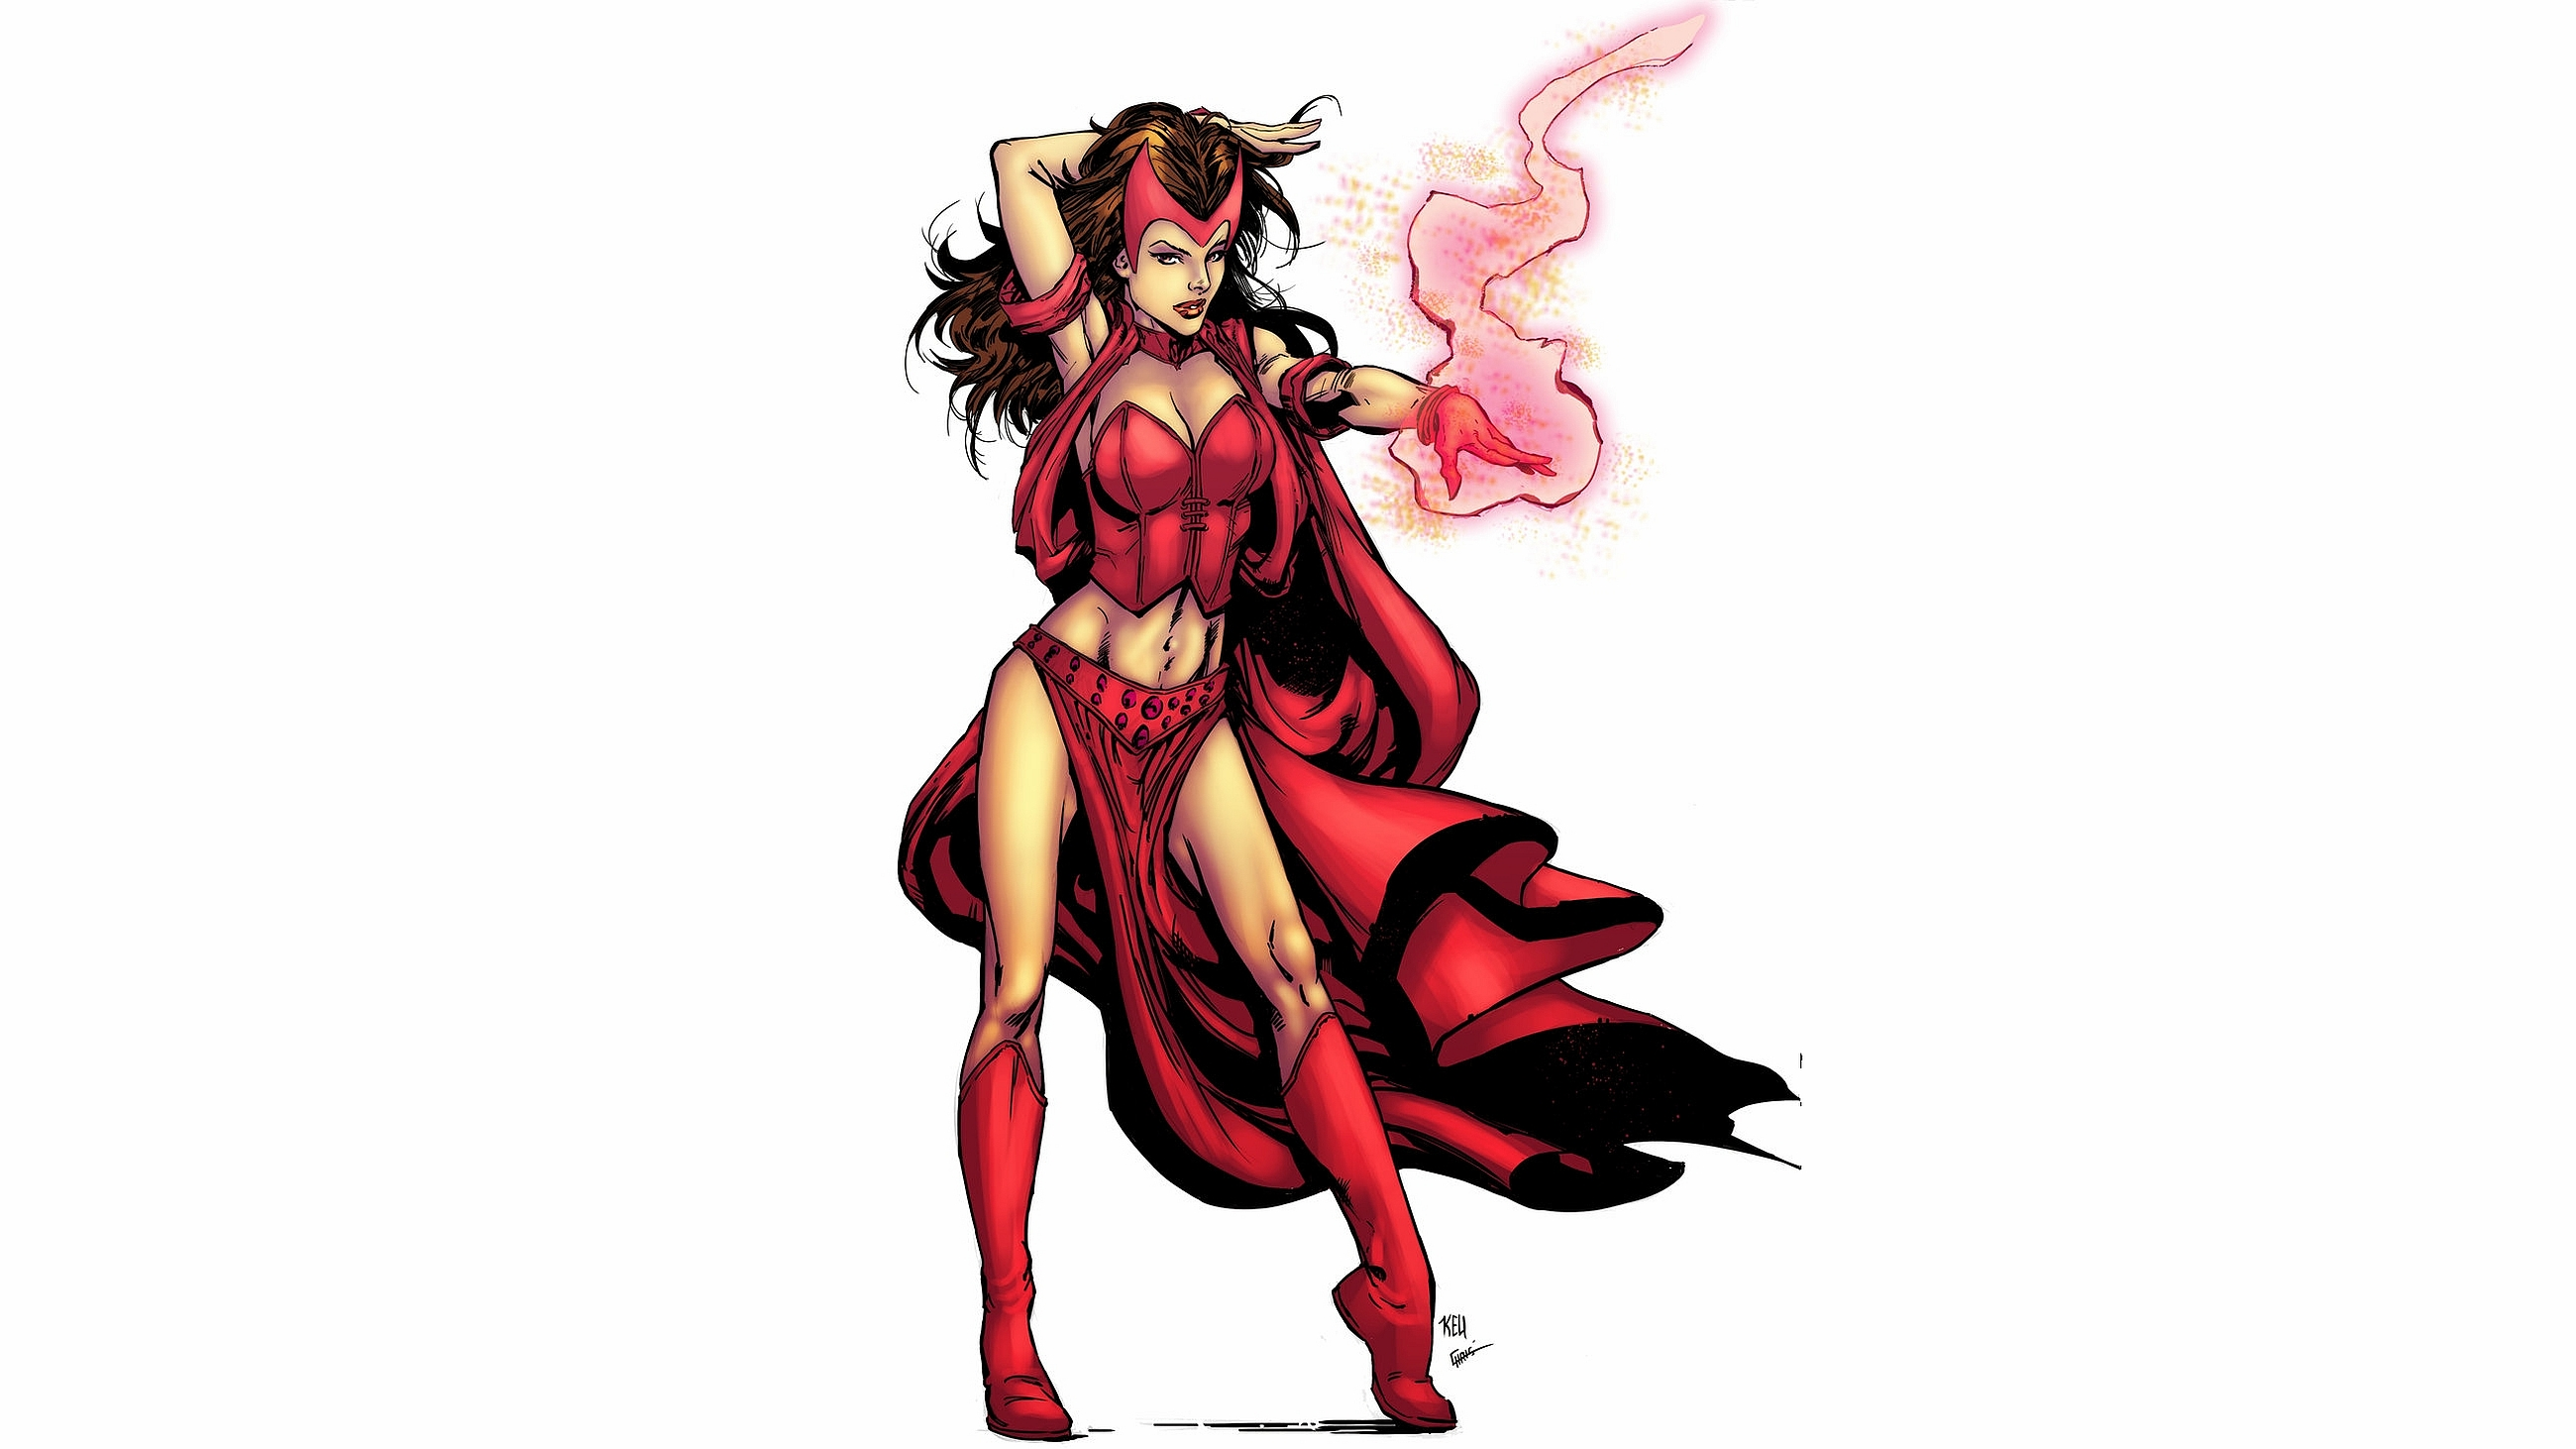 Scarlet Witch Computer Wallpapers Desktop Backgrounds 2600x1462 2600x1462